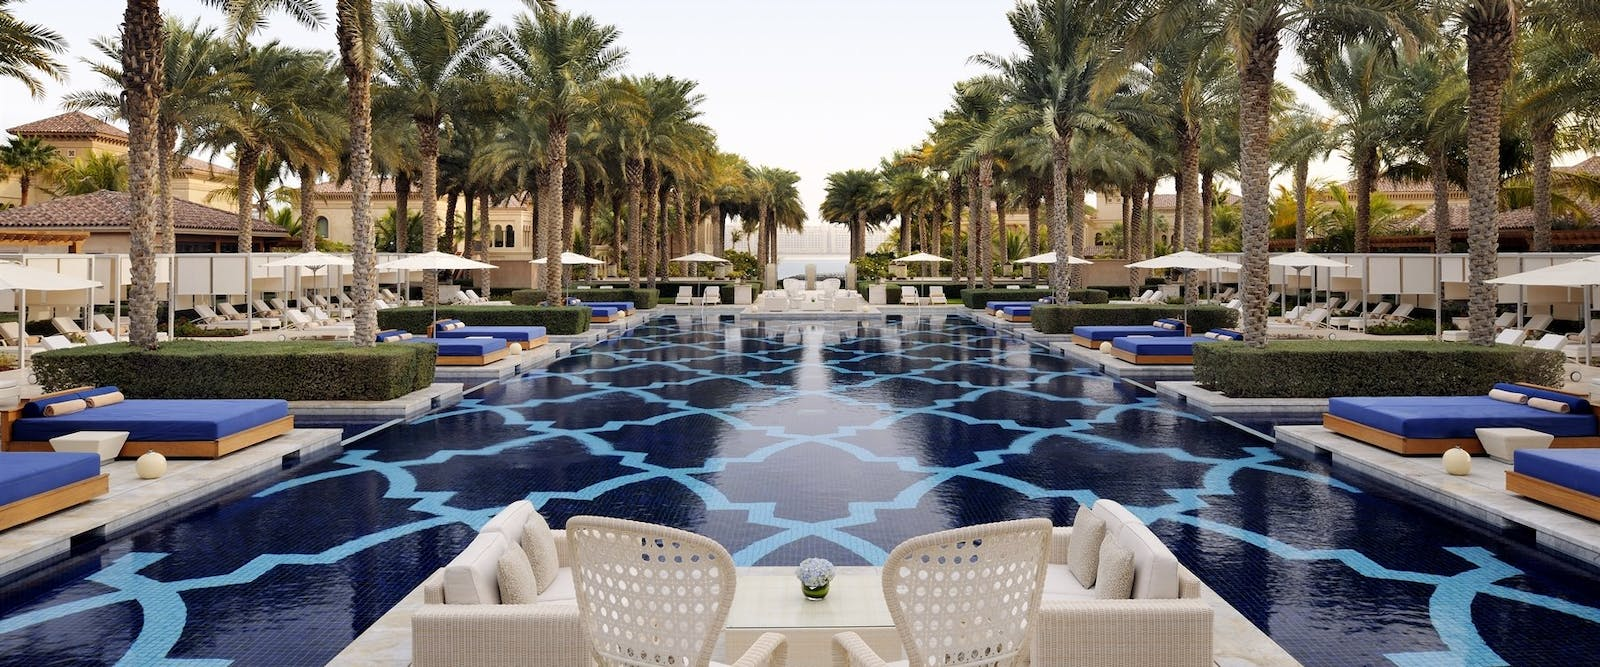 Swimming Pool at One&Only The Palm, Dubai